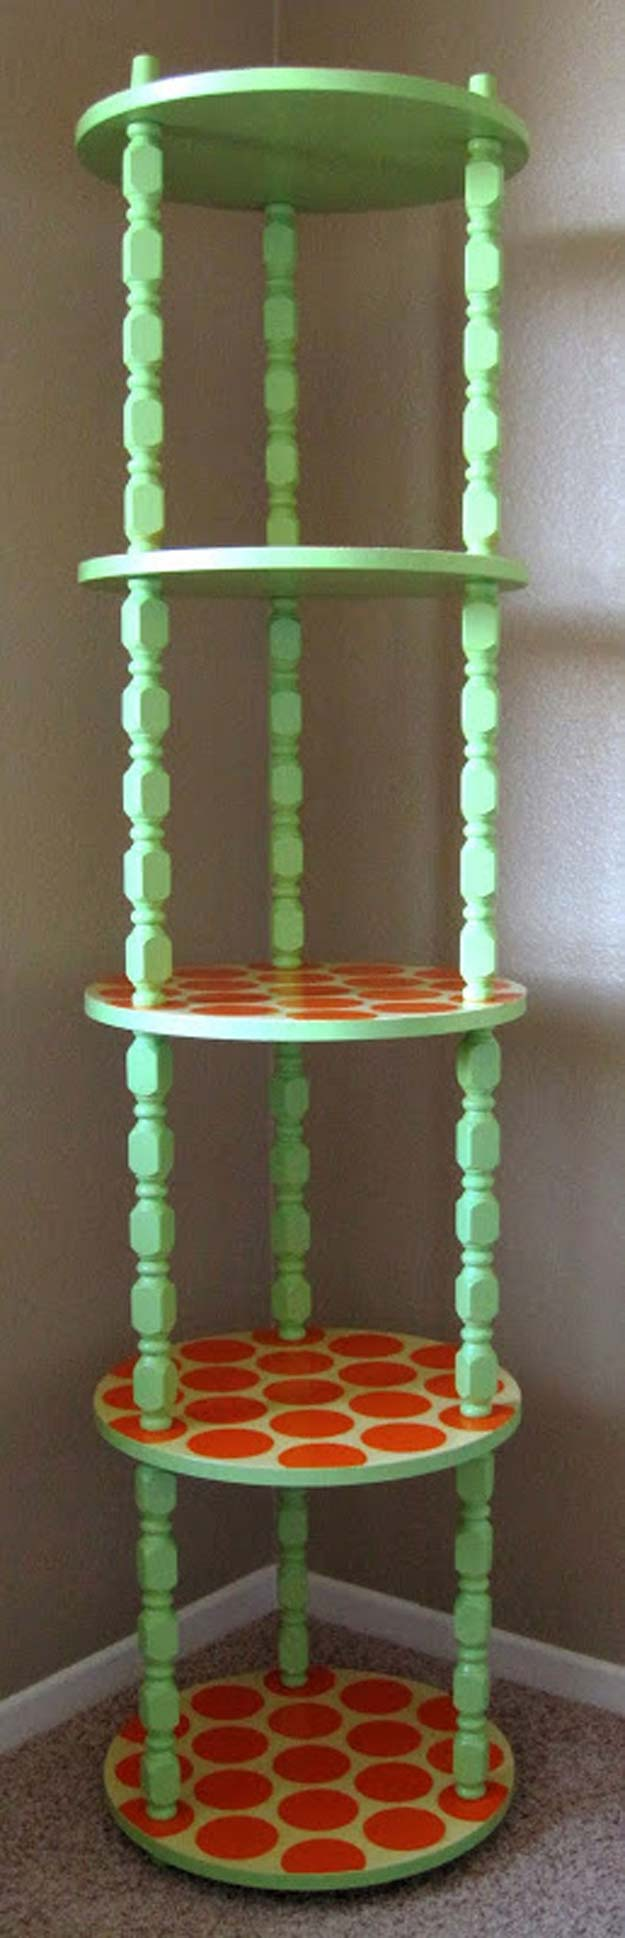 DIY Polka Dot Crafts and Projects - DIY Shelf Makeover - Cool Clothes, Room and Home Decor, Wall Art, Mason Jars and Party Ideas, Canvas, Fabric and Paint Project Tutorials - Fun Craft Ideas for Teens, Kids and Adults Make Awesome DIY Gifts